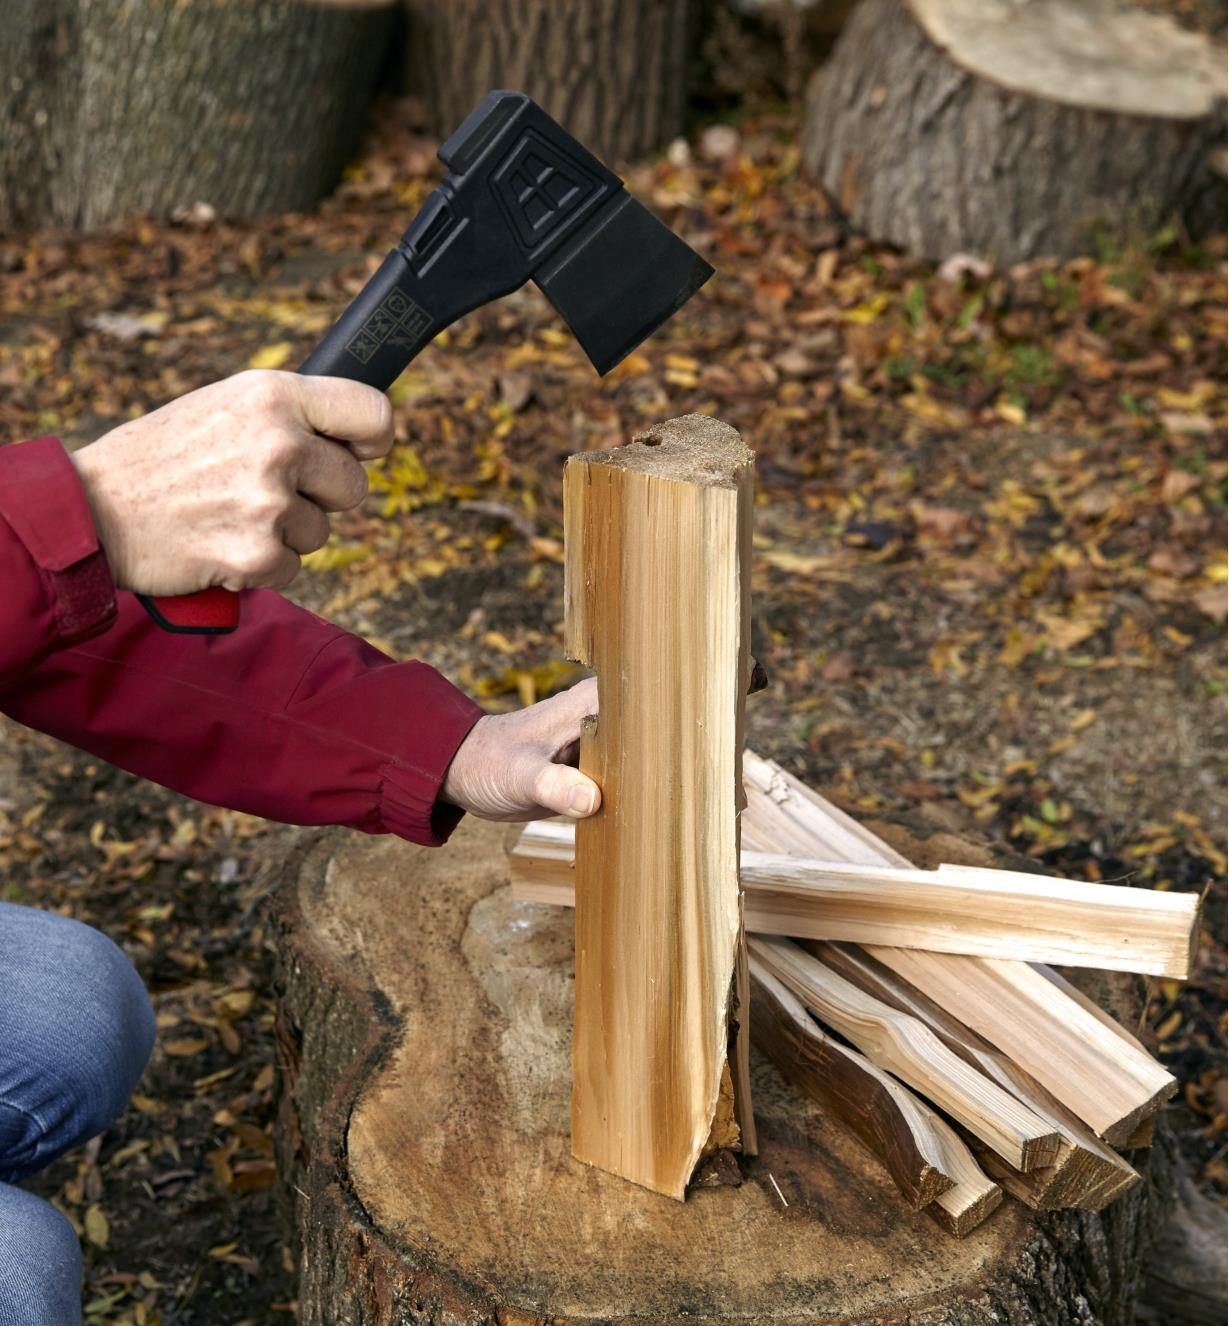 The hatchet being used to split a piece of firewood into kindling